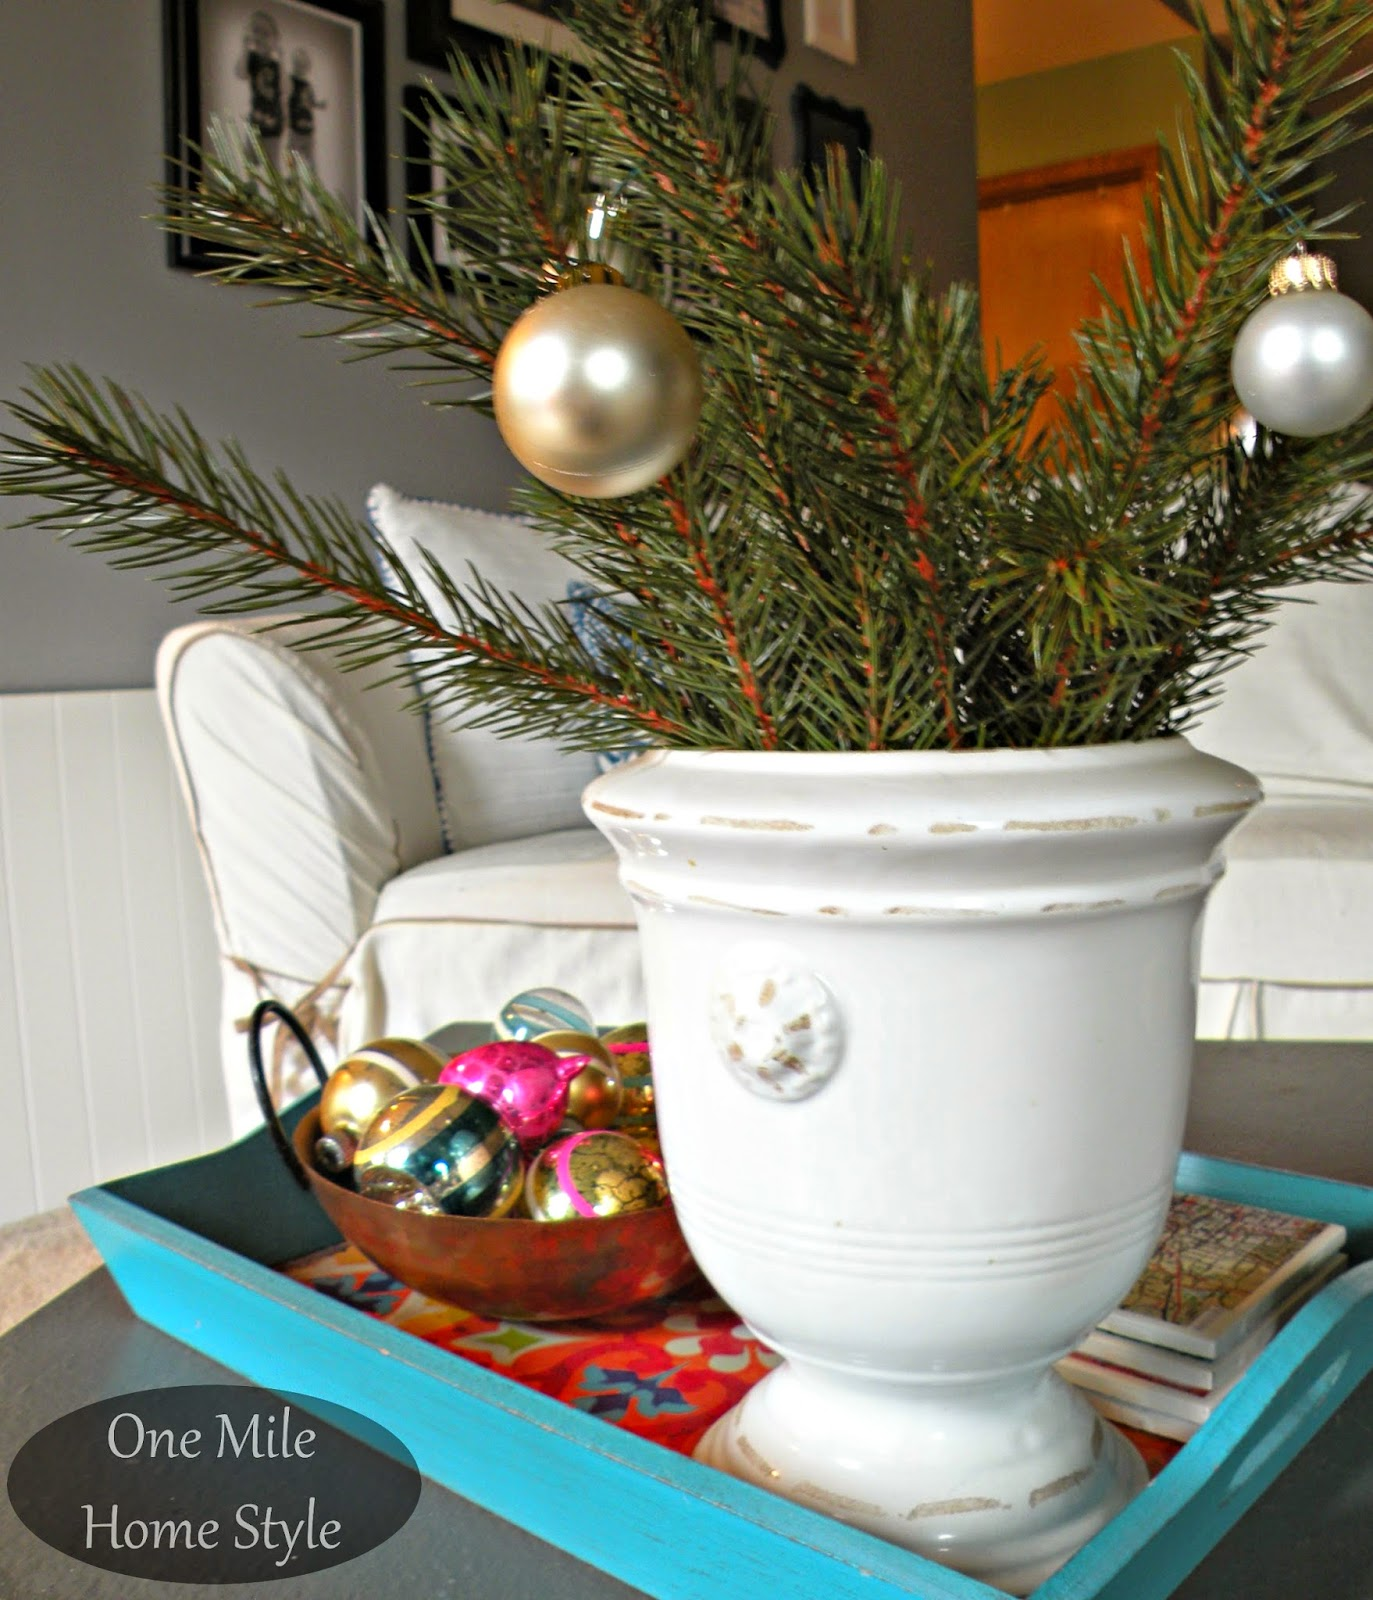 Christmas greenery with a copper bowl of vintage Christmas ornaments